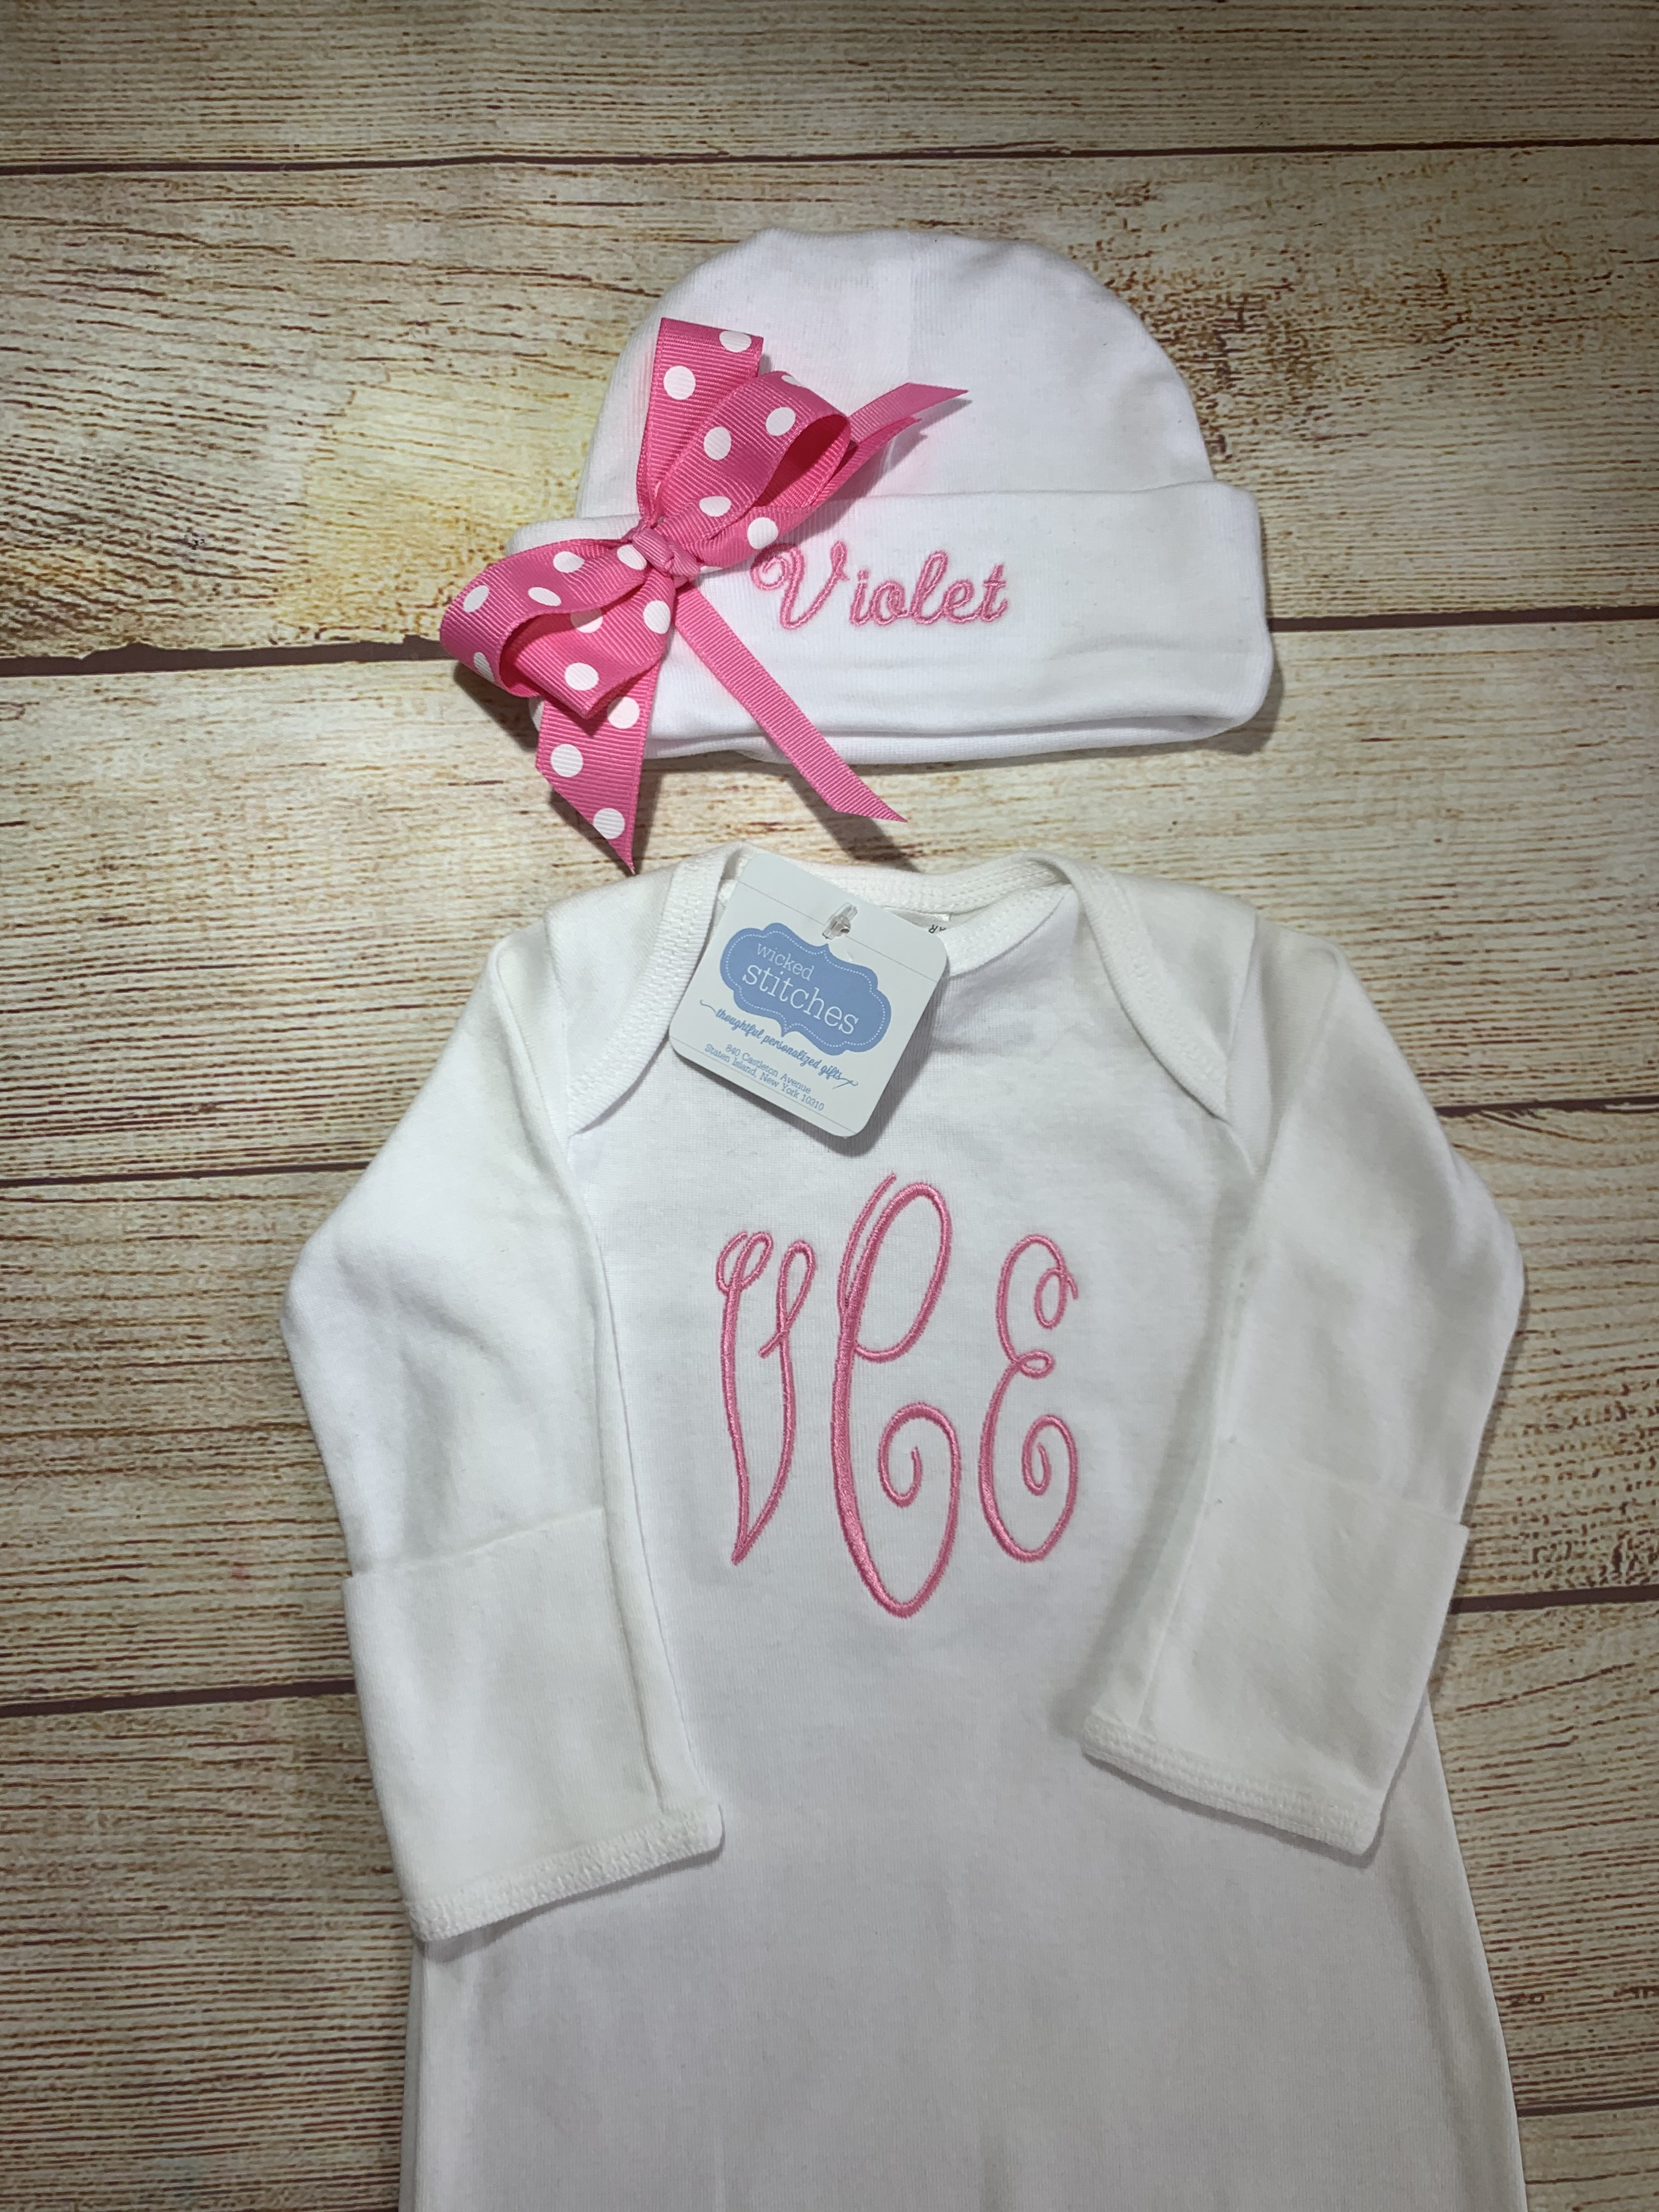 Baby's First Monogrammed Newborn Gown by Wicked Stitches Gifts Great take home outfit!